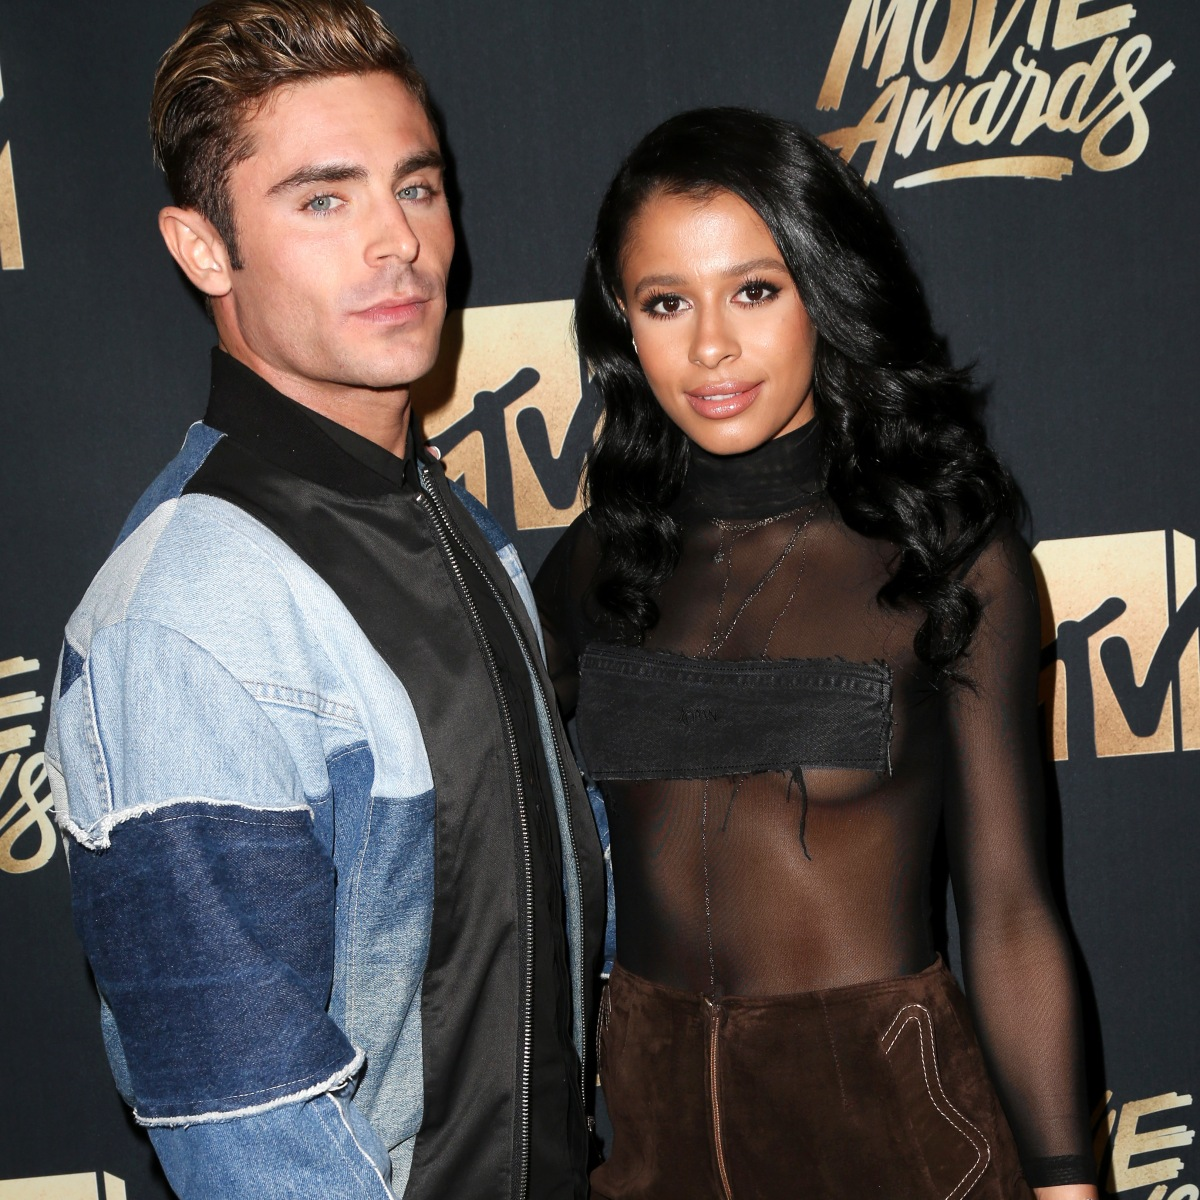 Who is zac efrons girlfriend